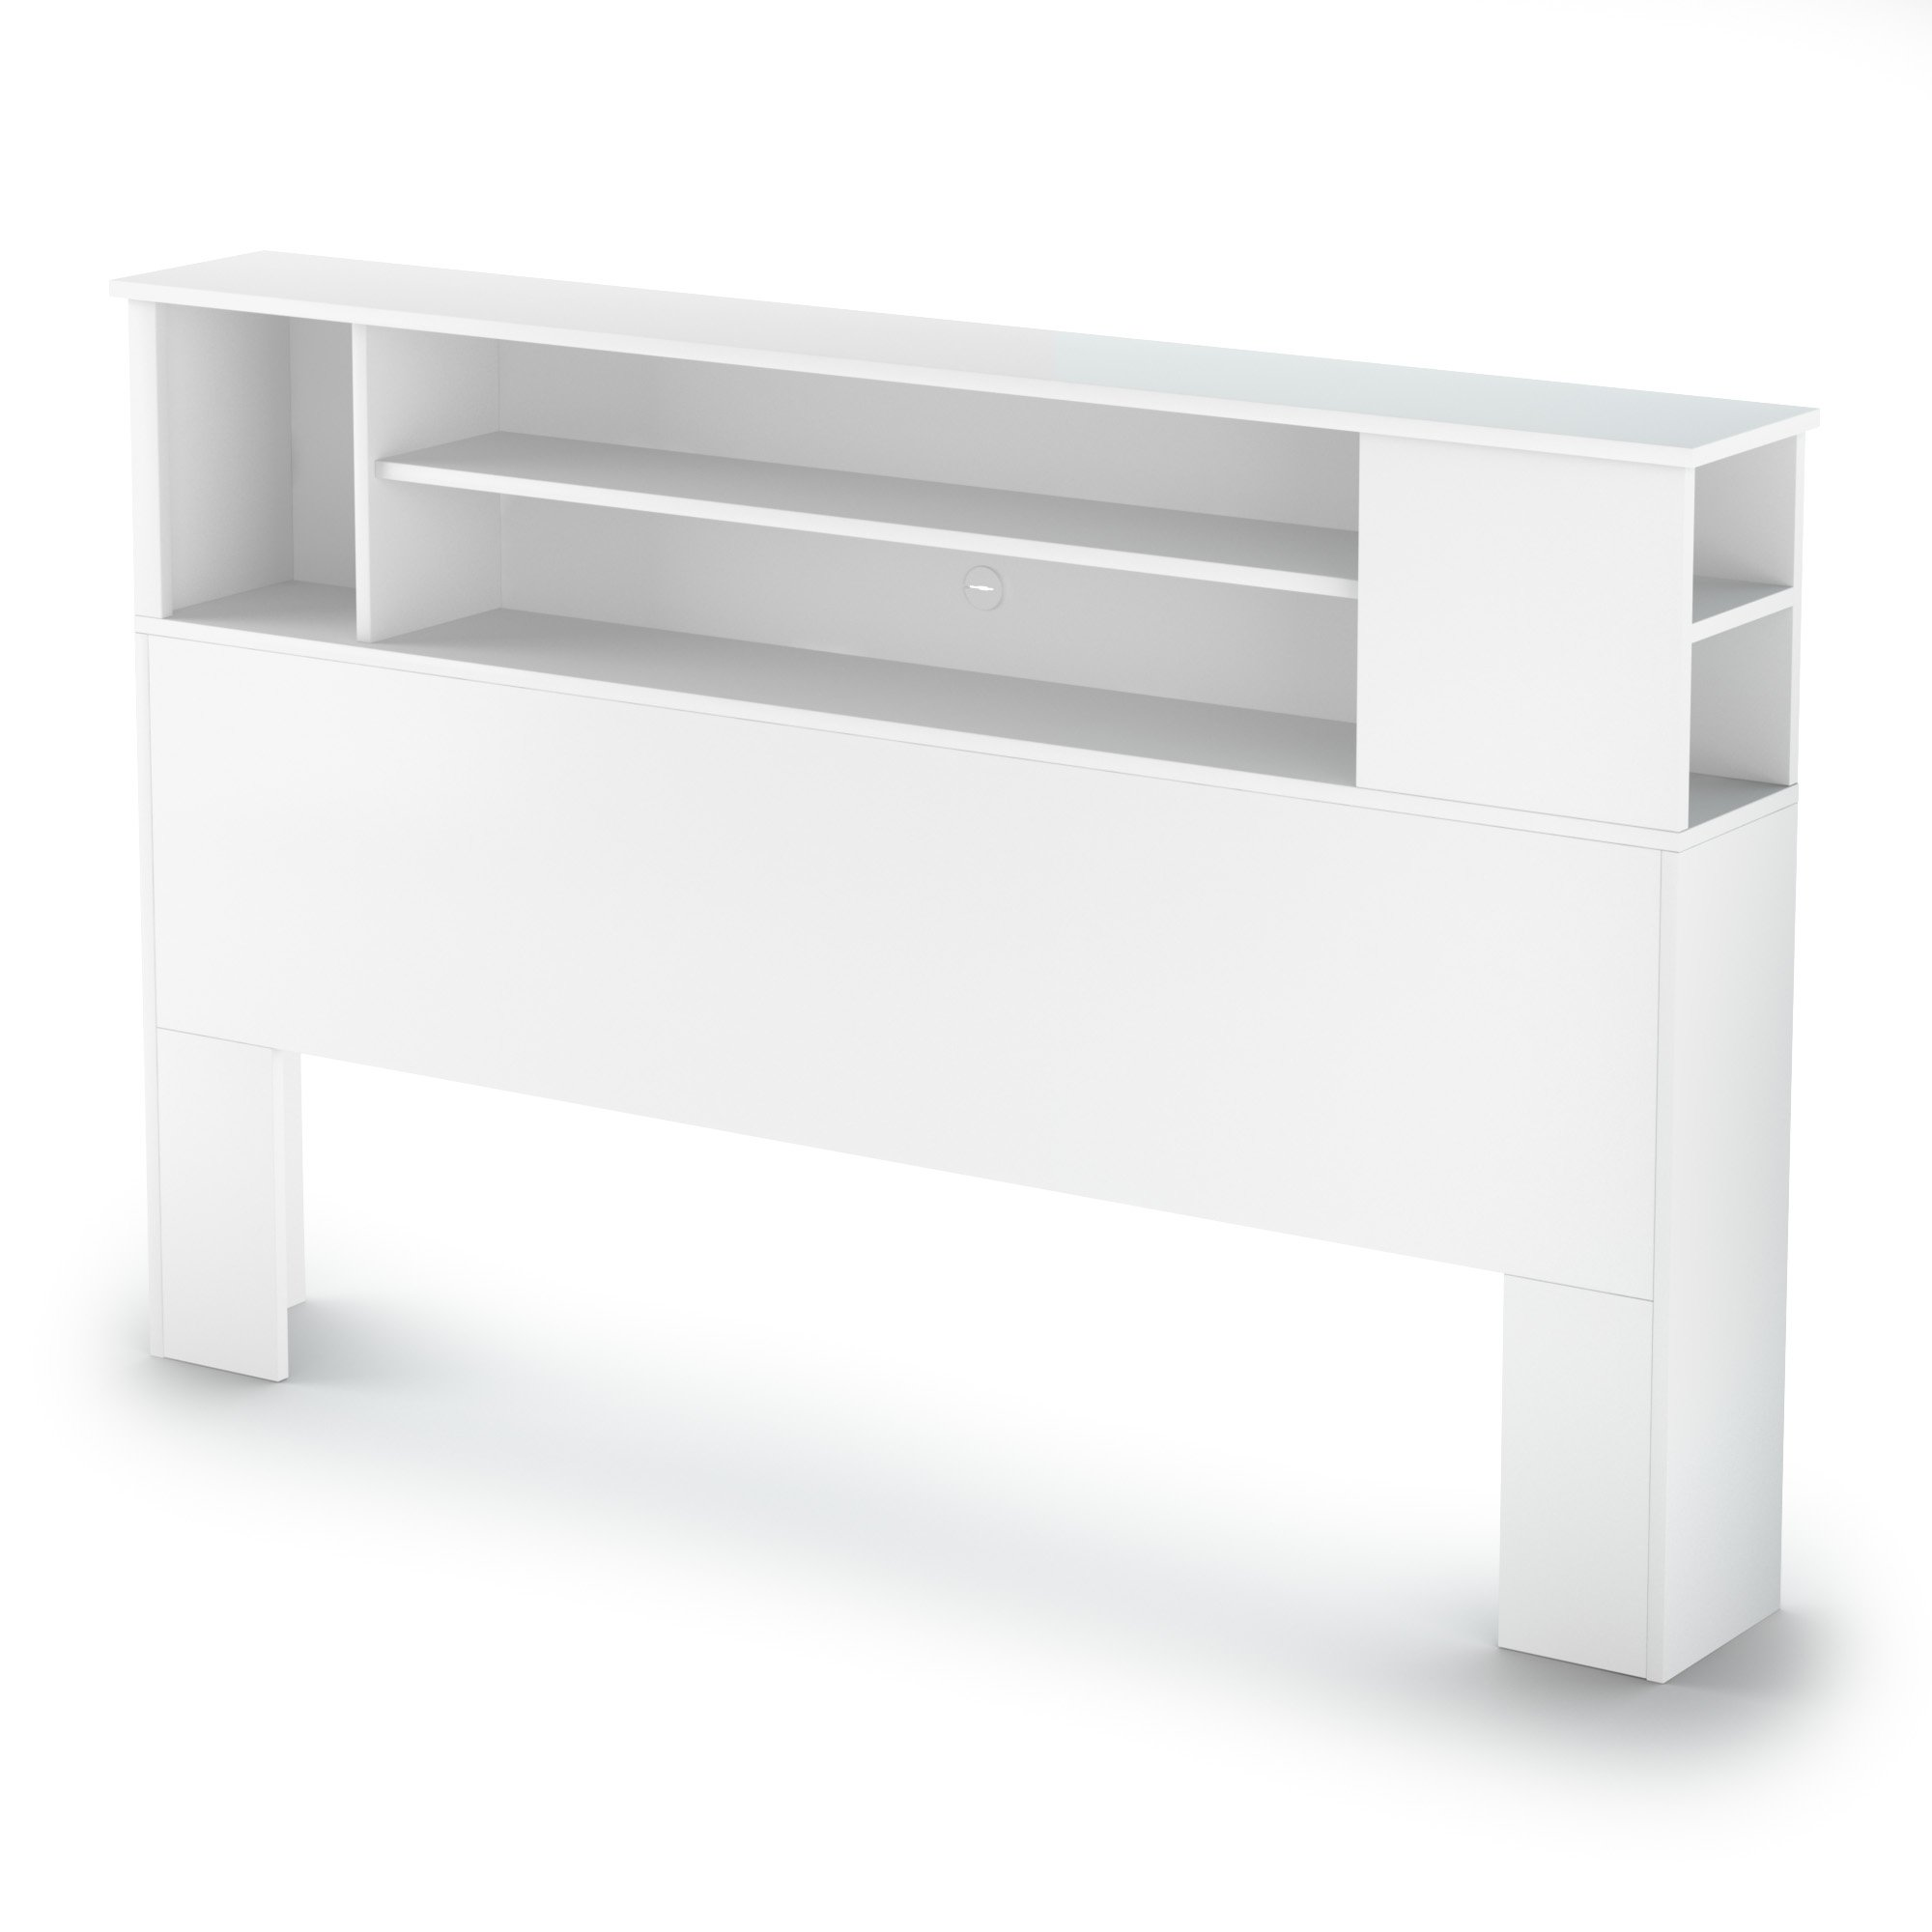 South Shore Furniture 54/60'' Fusion Bookcase Headboard, Full/Queen, Pure White by South Shore